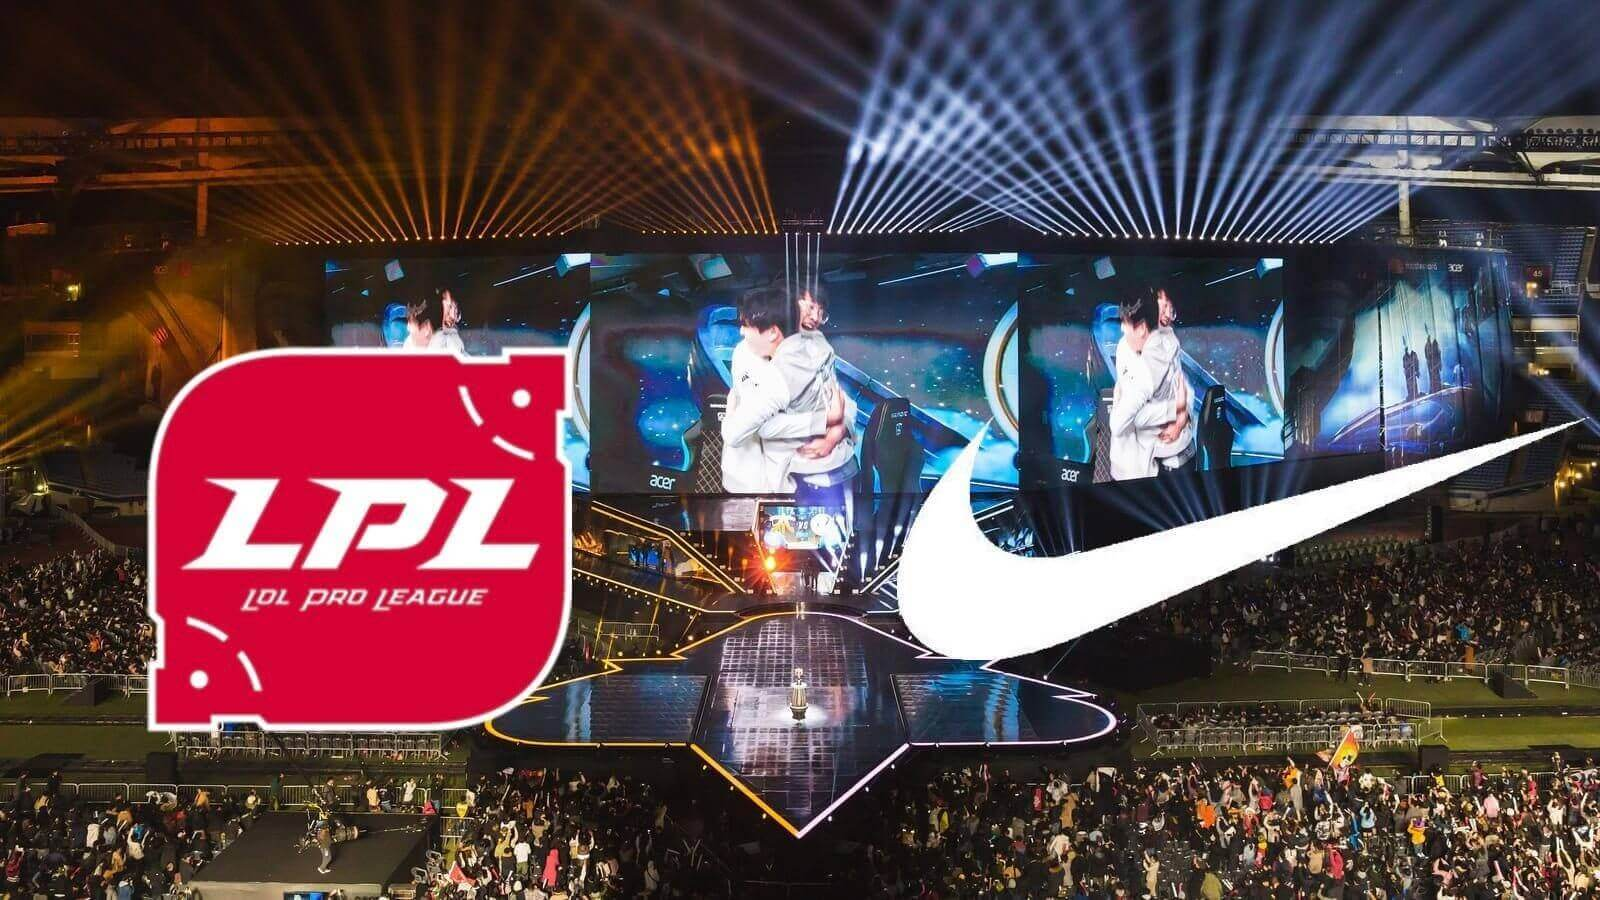 Nike's League of Legends Deal Disputed by Teams